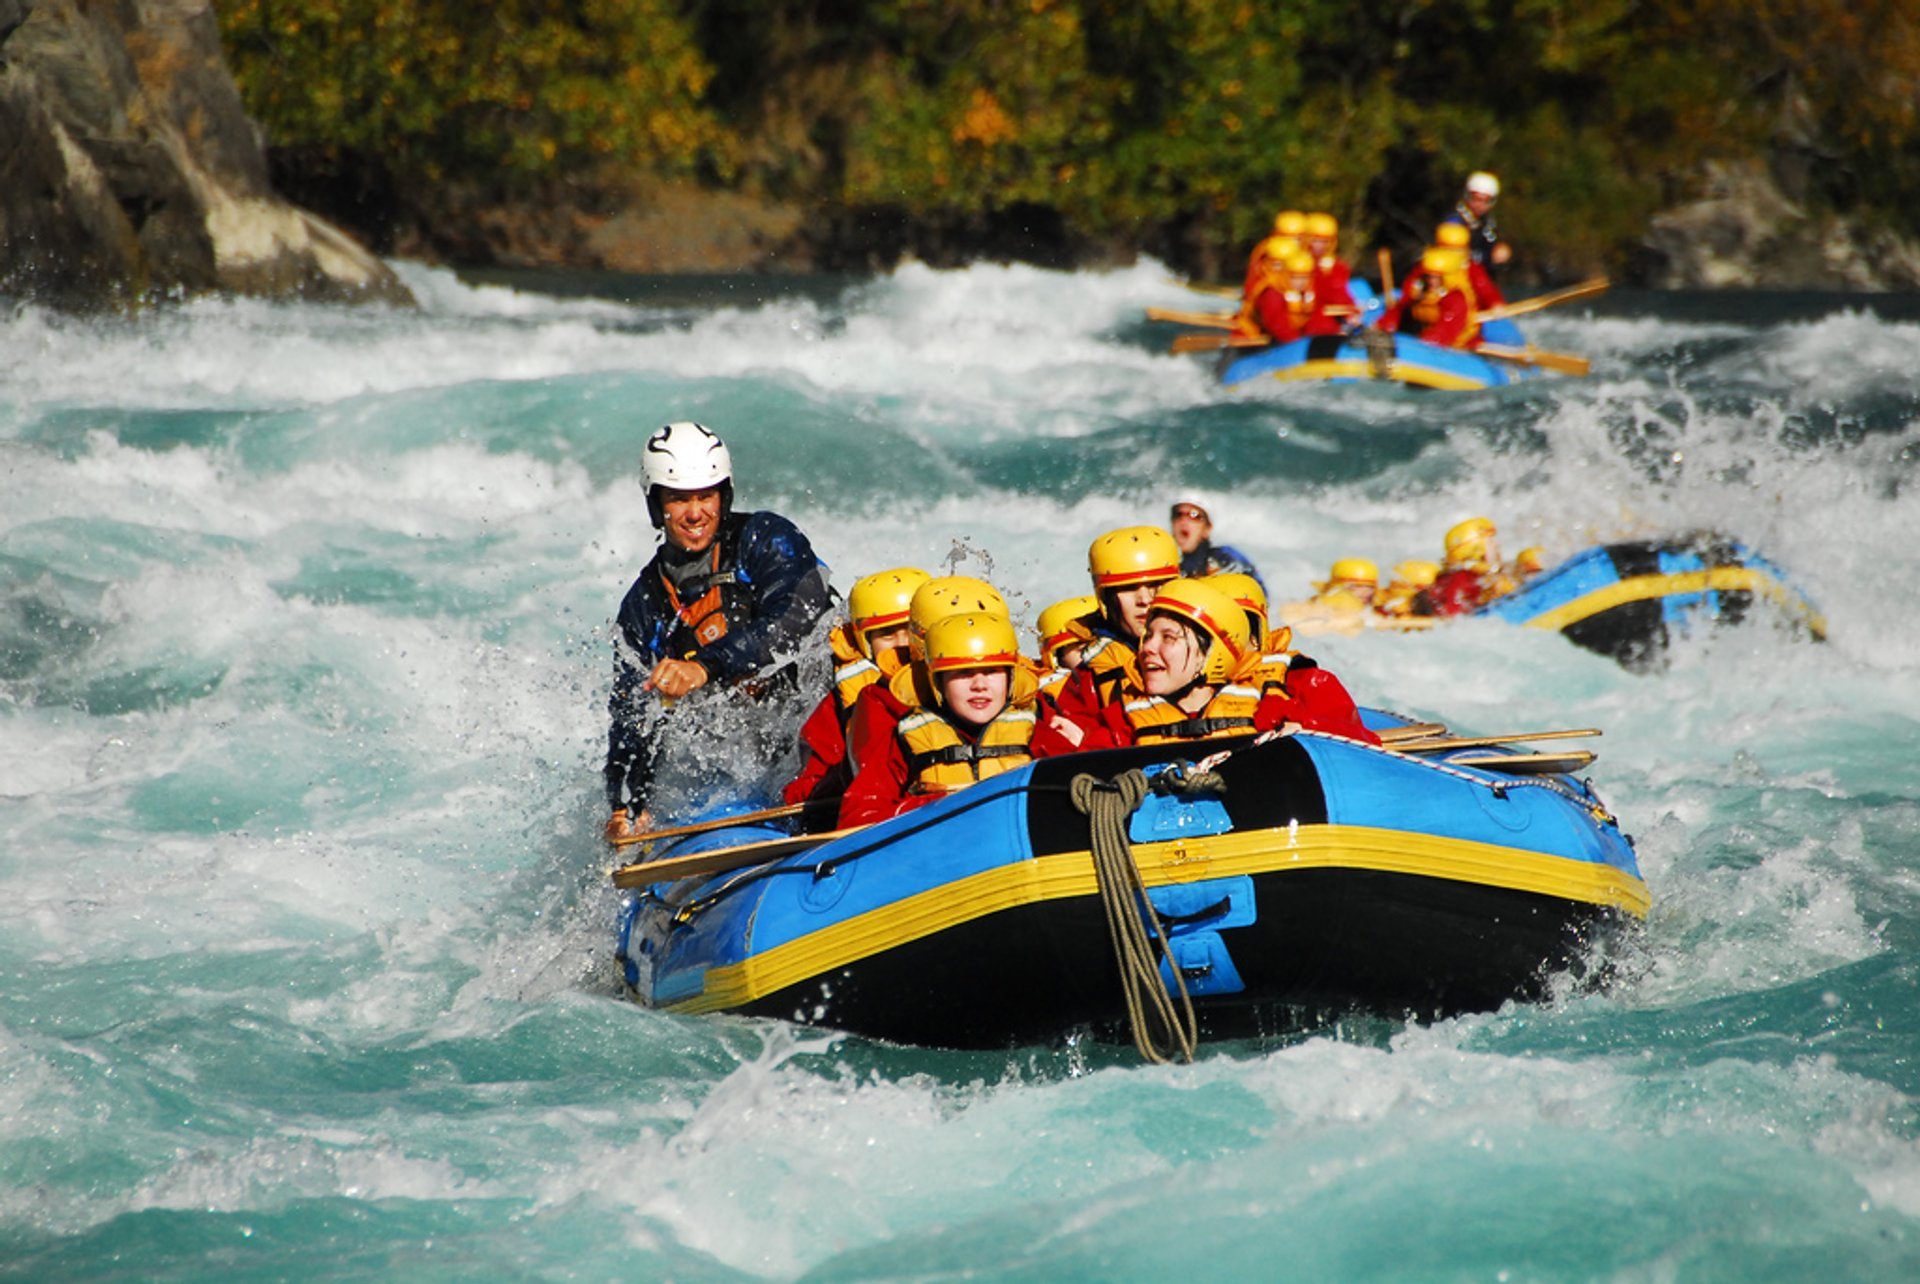 White Water Rafting in New Zealand 2020 - Best Time